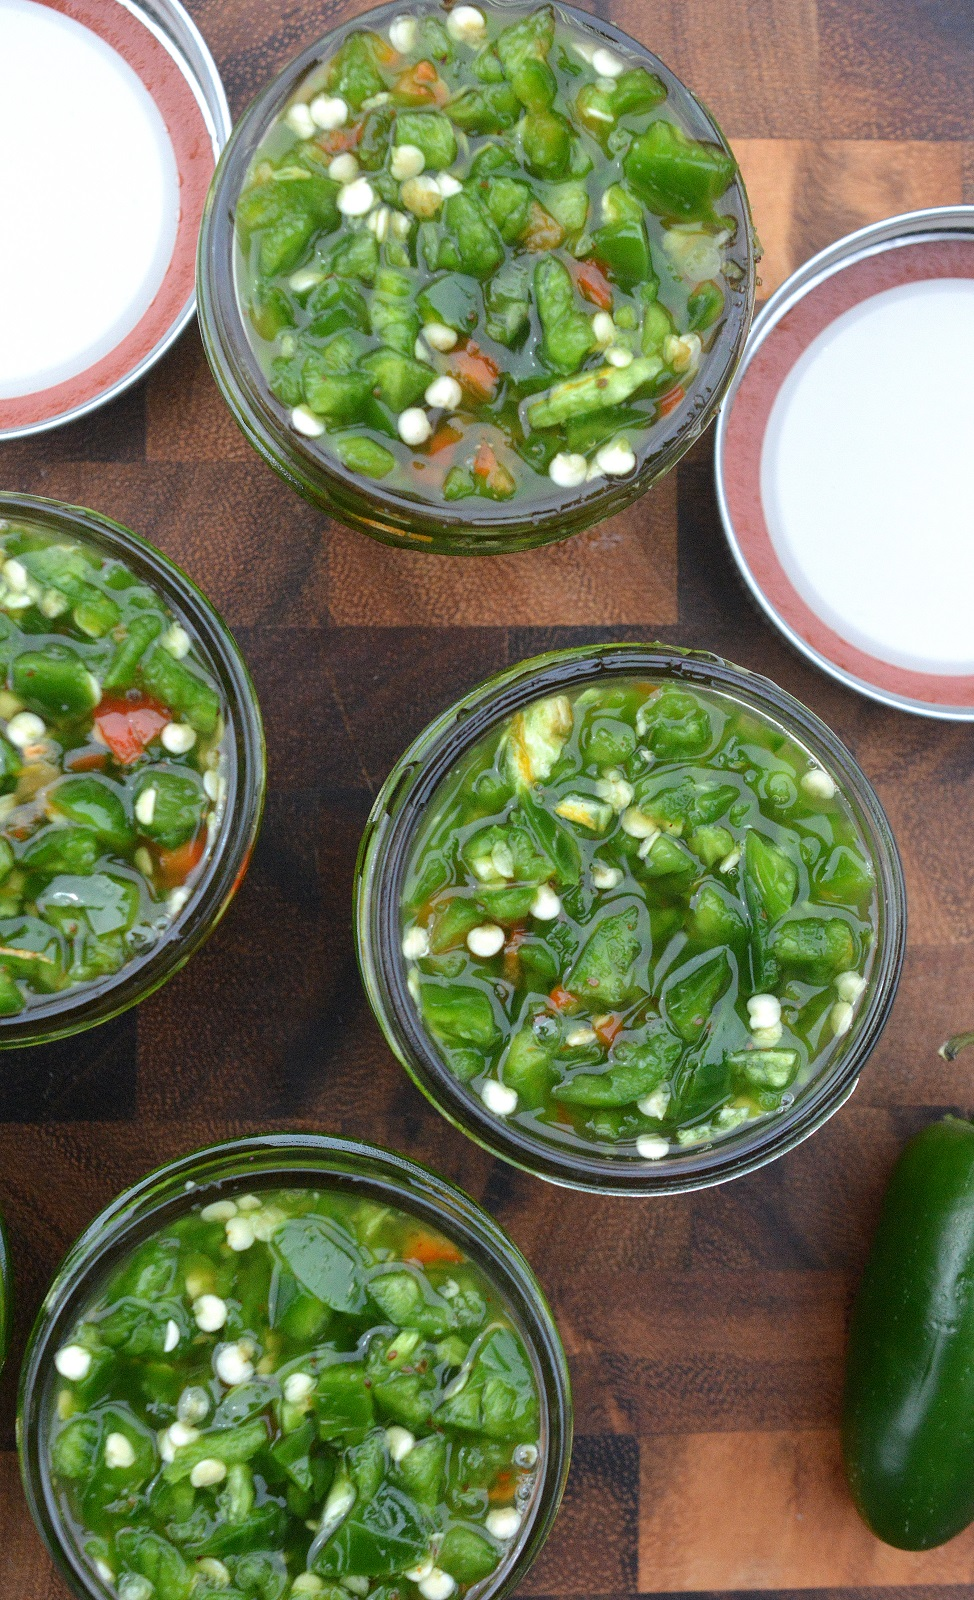 Jalapeno Relish made by quick pickling, ready overnight and lasts for weeks. Makes a great food gift!